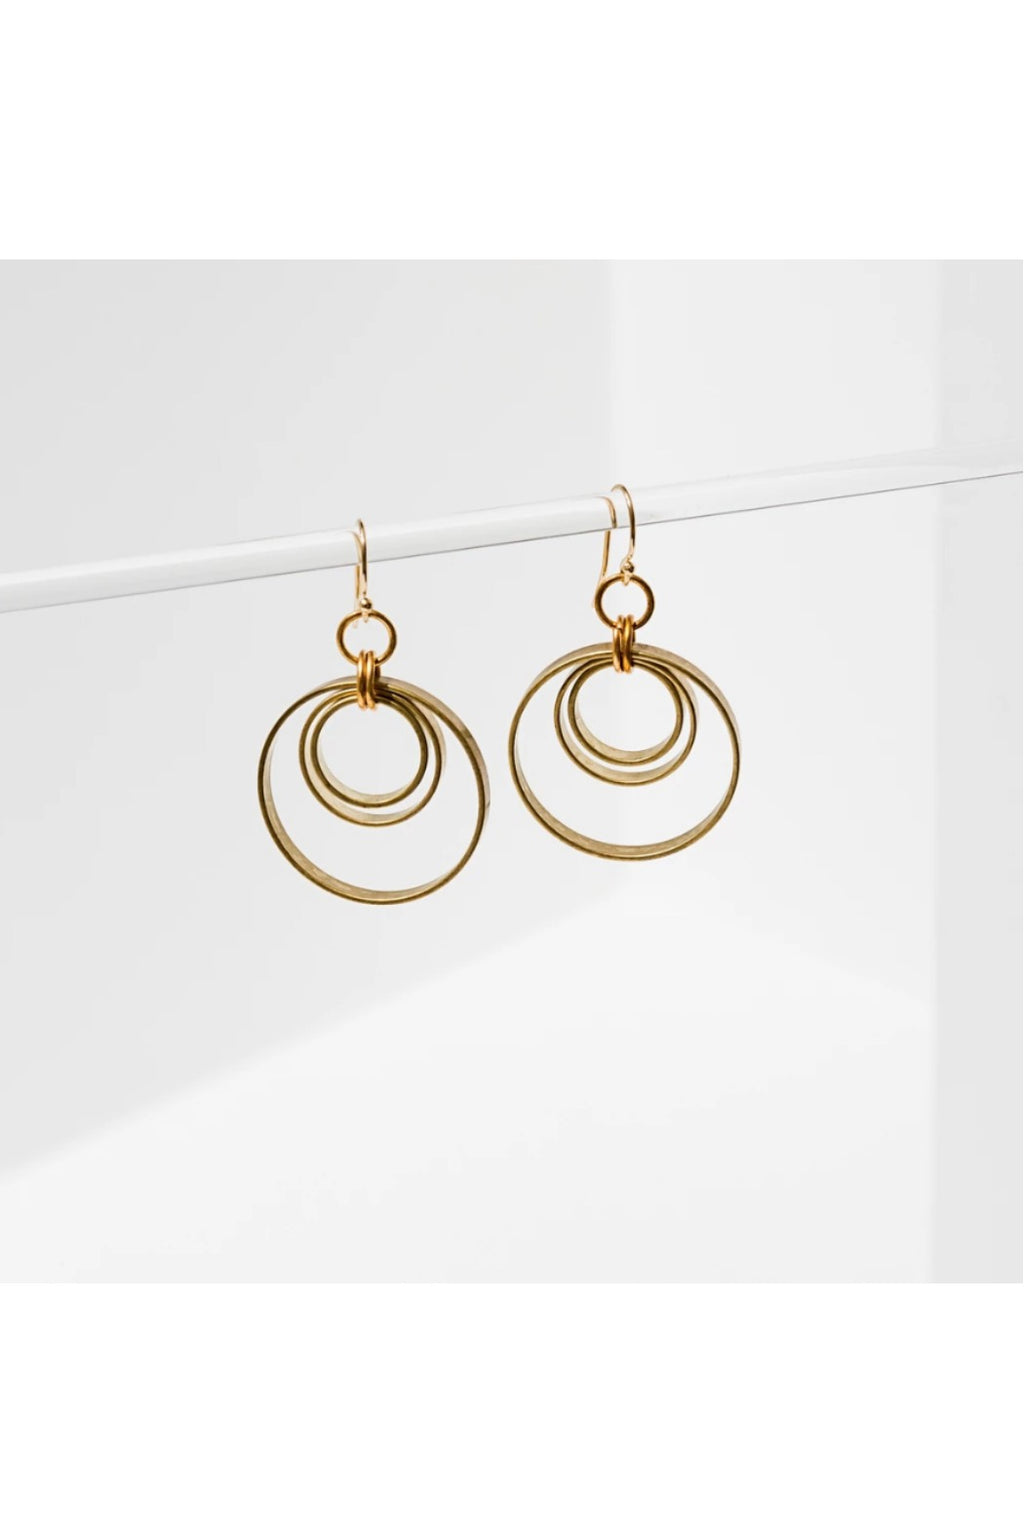 Larissa Loden Concentric Circle Earrings